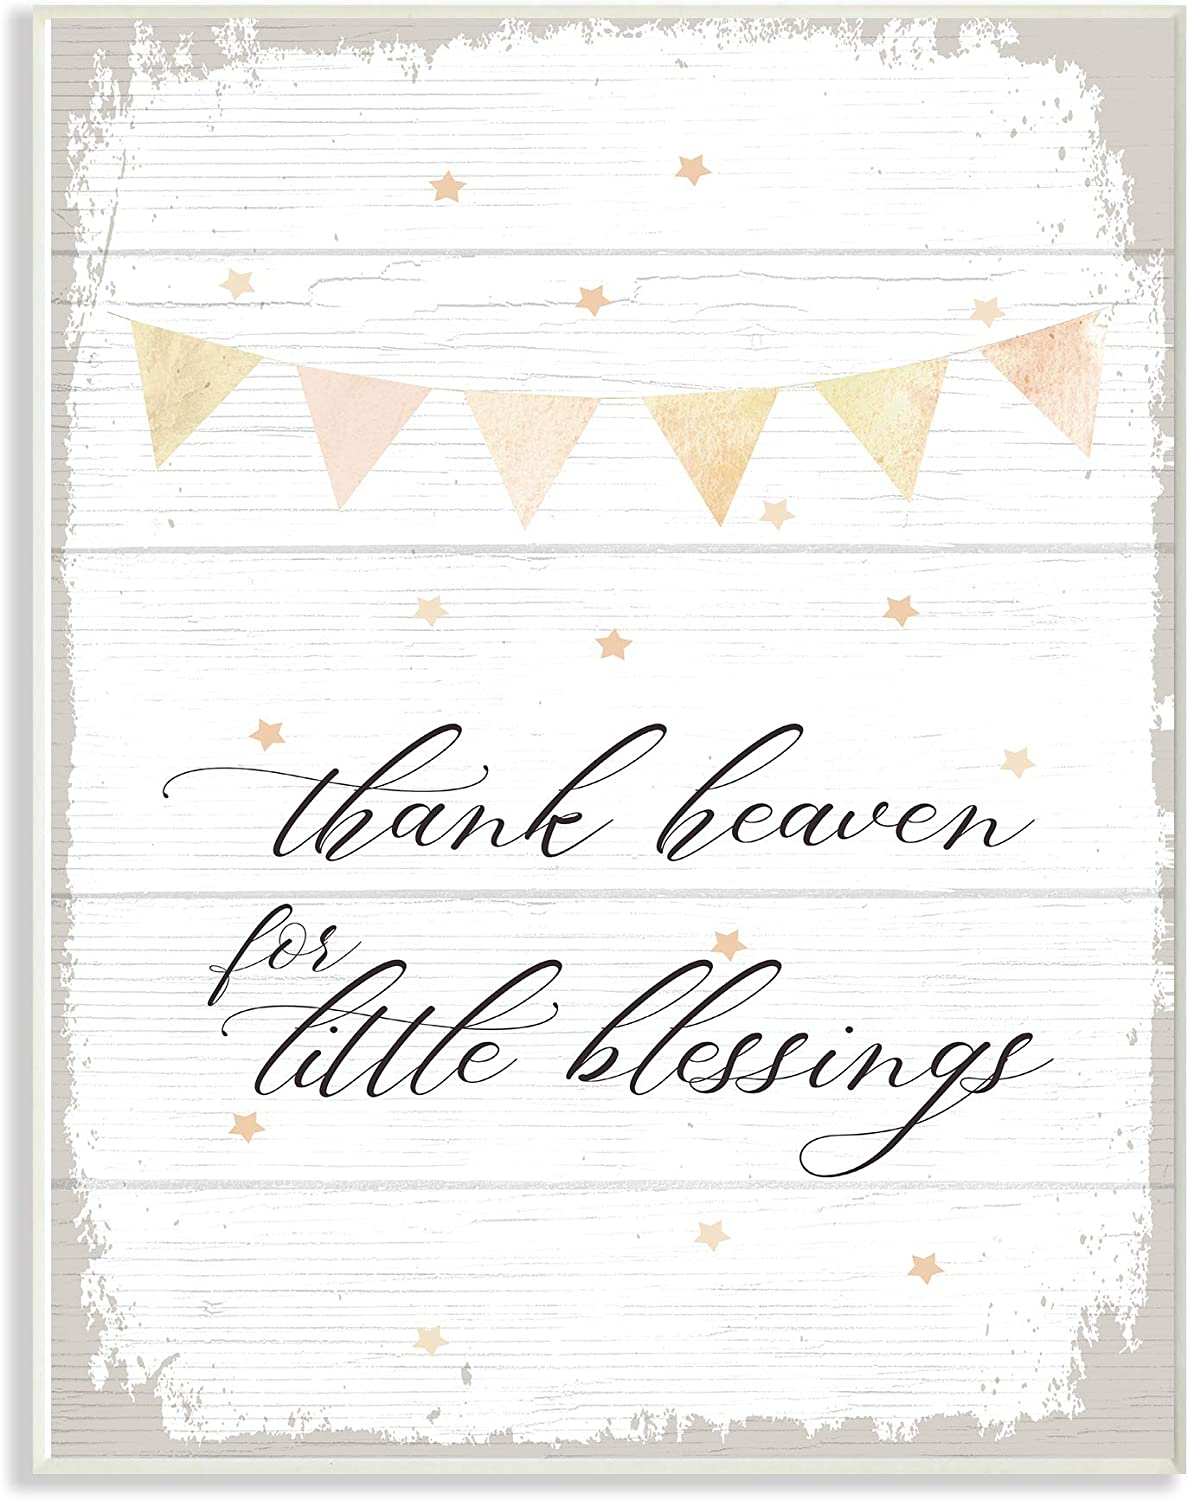 The Kids Room by Stupell Yellow Bunting Thank Heaven for Little Blessings Planked Look Wall Plaque Art, 13 X 19 Multi-color